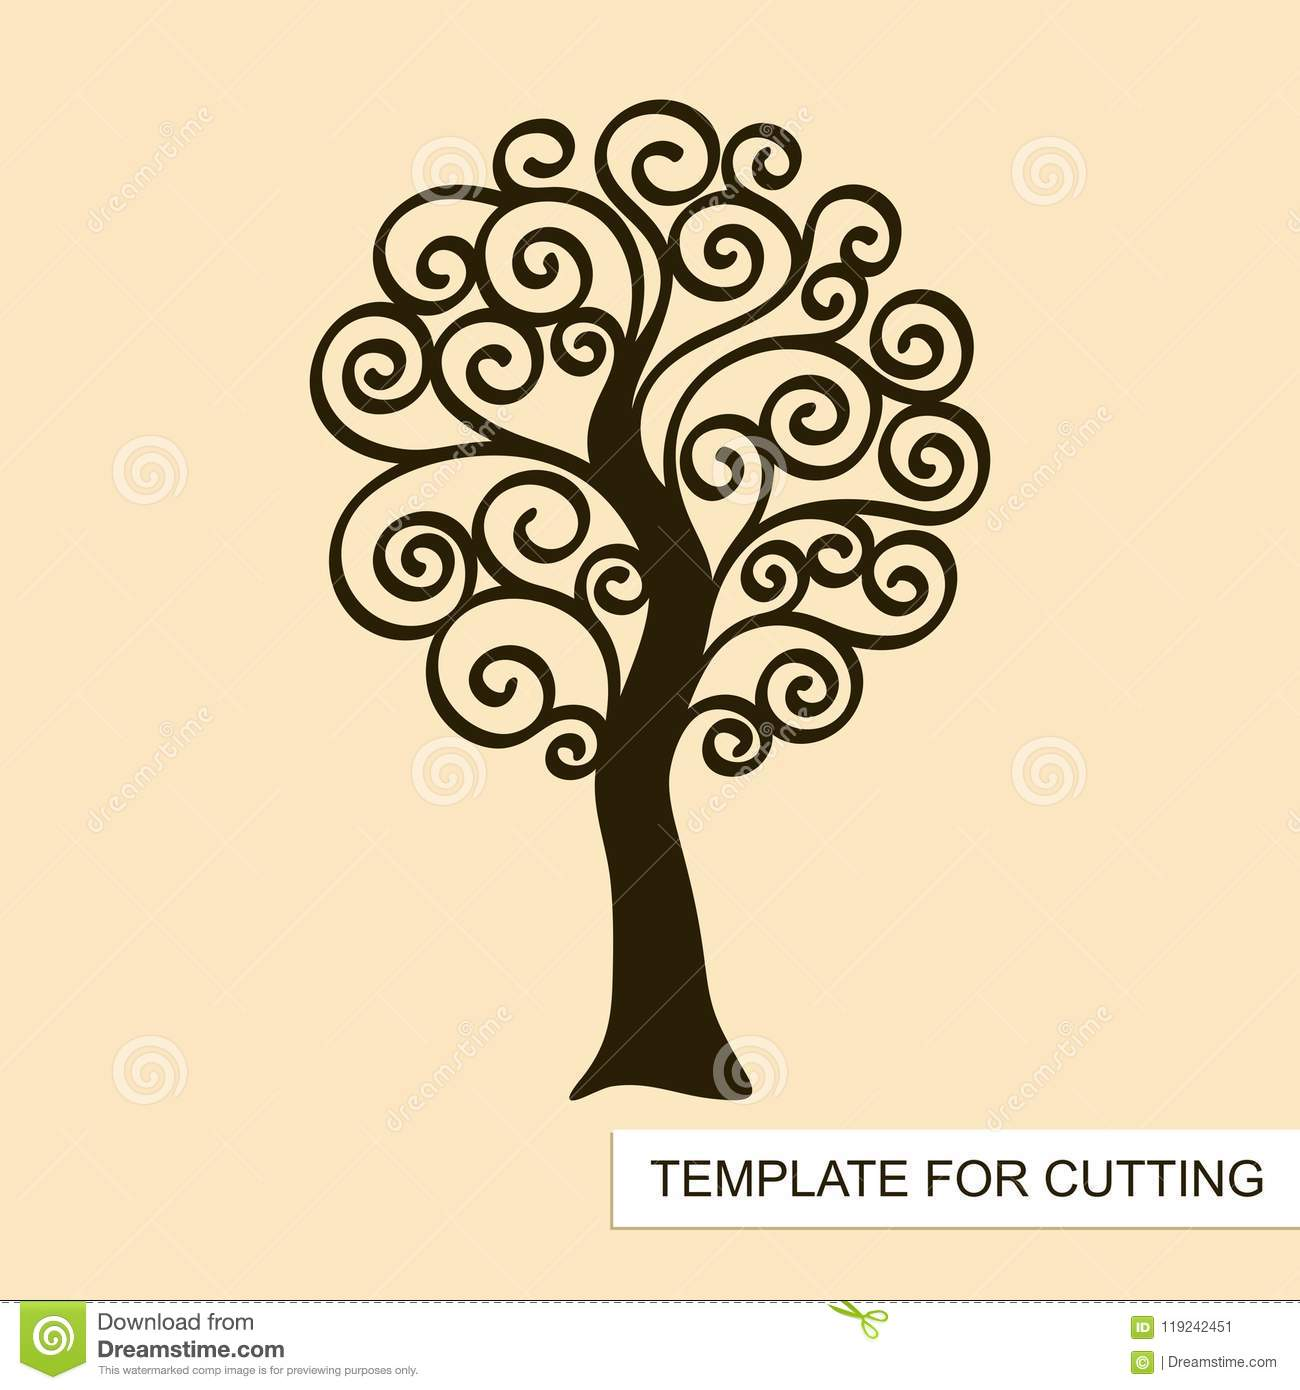 Graphic silhouette of swirl tree without leaves stock vector download graphic silhouette of swirl tree without leaves stock vector illustration of cutout maxwellsz